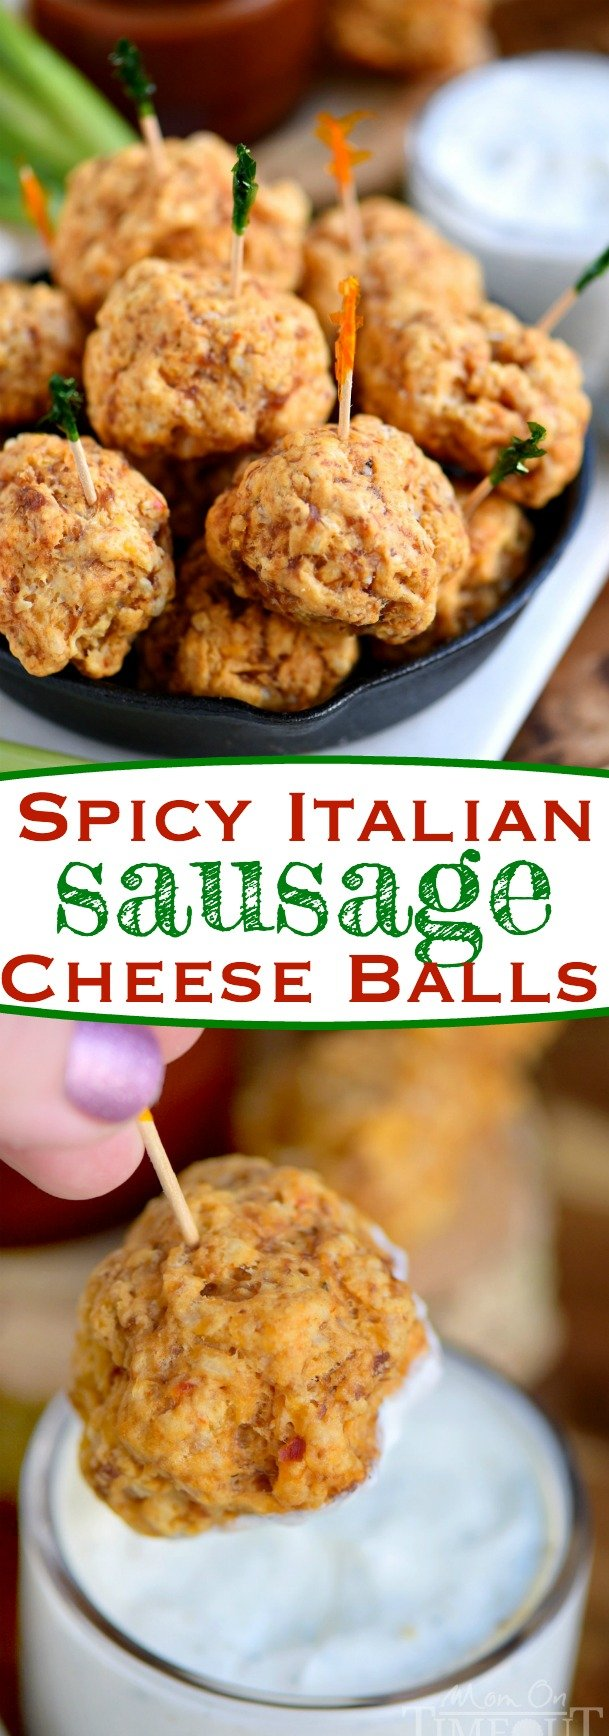 These Spicy Italian Sausage Cheese Balls are guaranteed to be a hit at your next party! So easy to make and perfect for game day! We like to dip them in ranch, bbq sauce, or marinara - so good! // Mom On Timeout